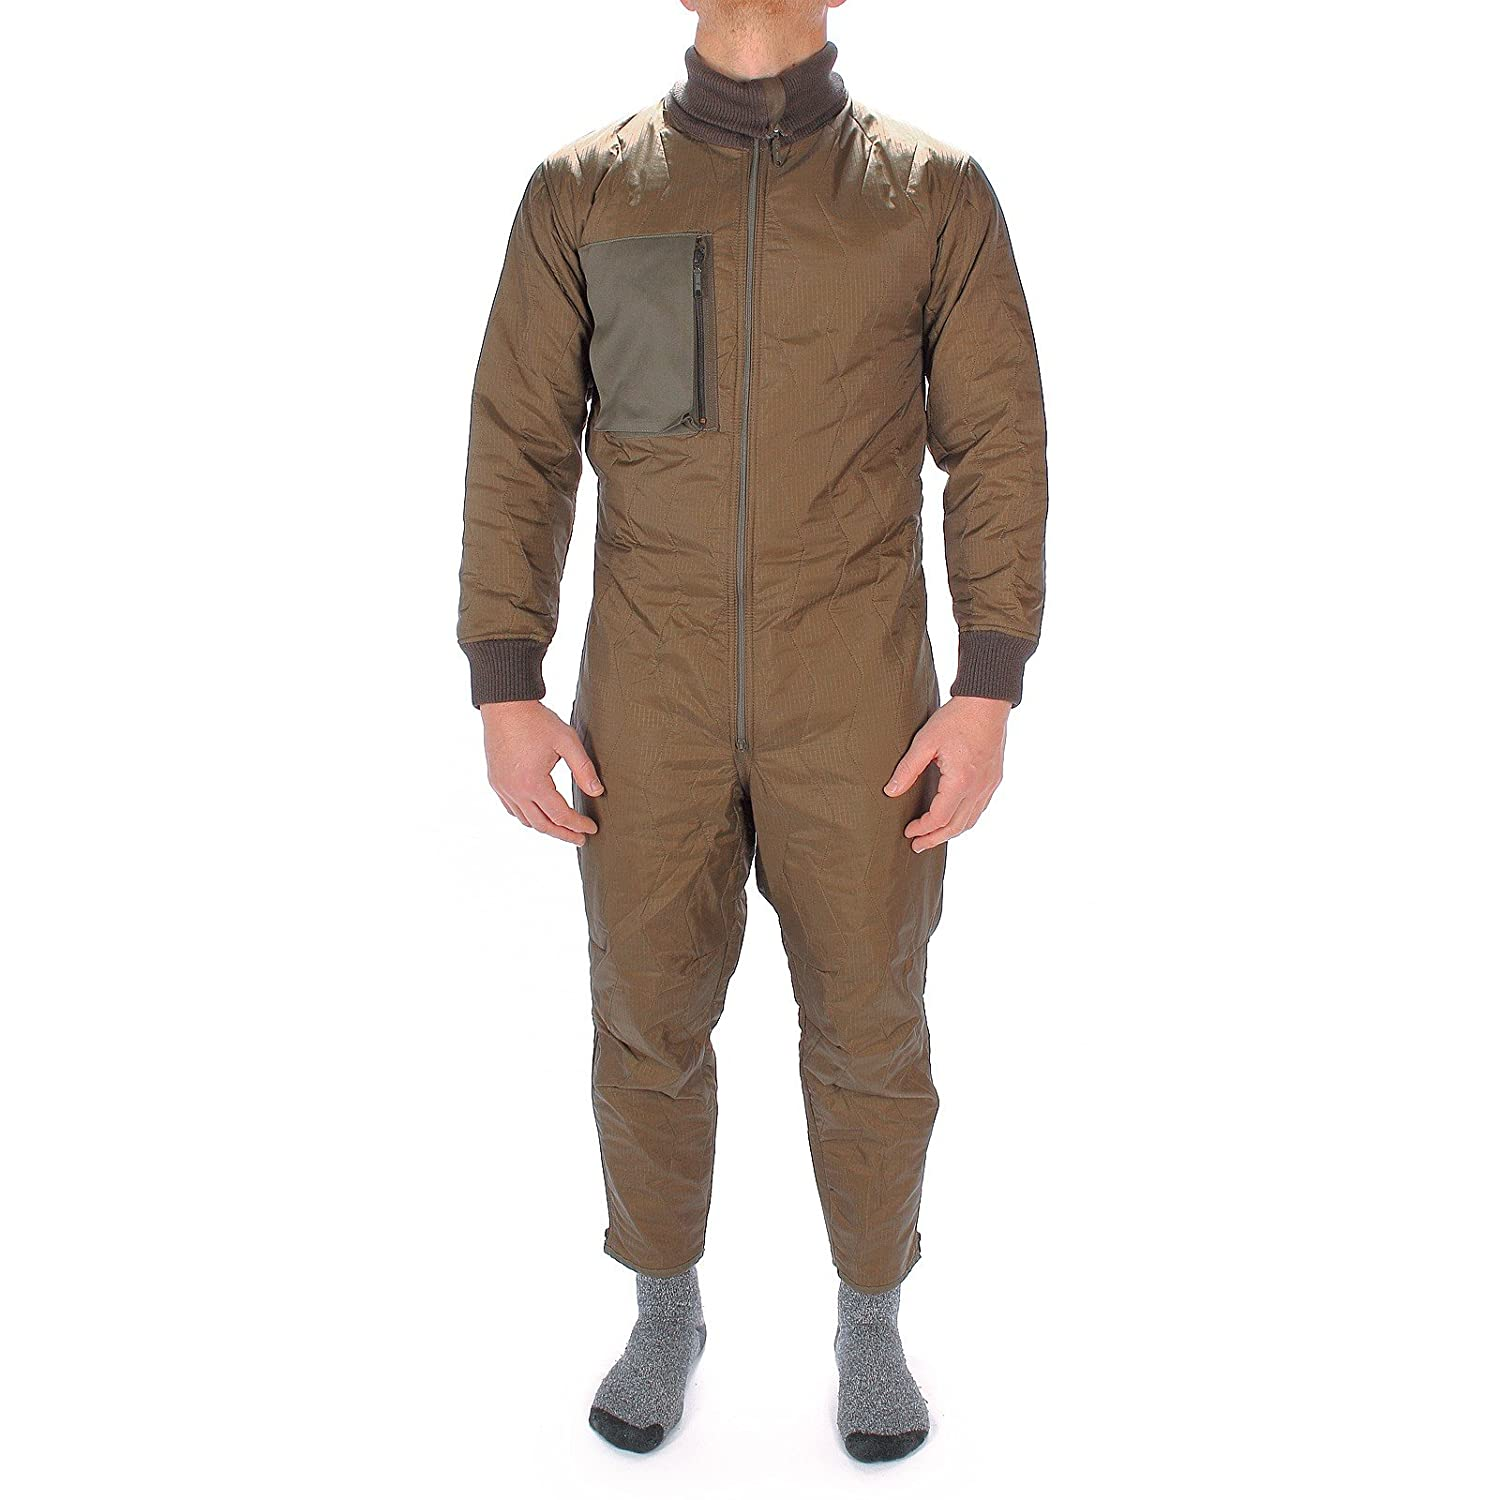 Mil-Tec German Army Overalls Coveralls Undersuit Zip Tanker Combi Kombi Suit